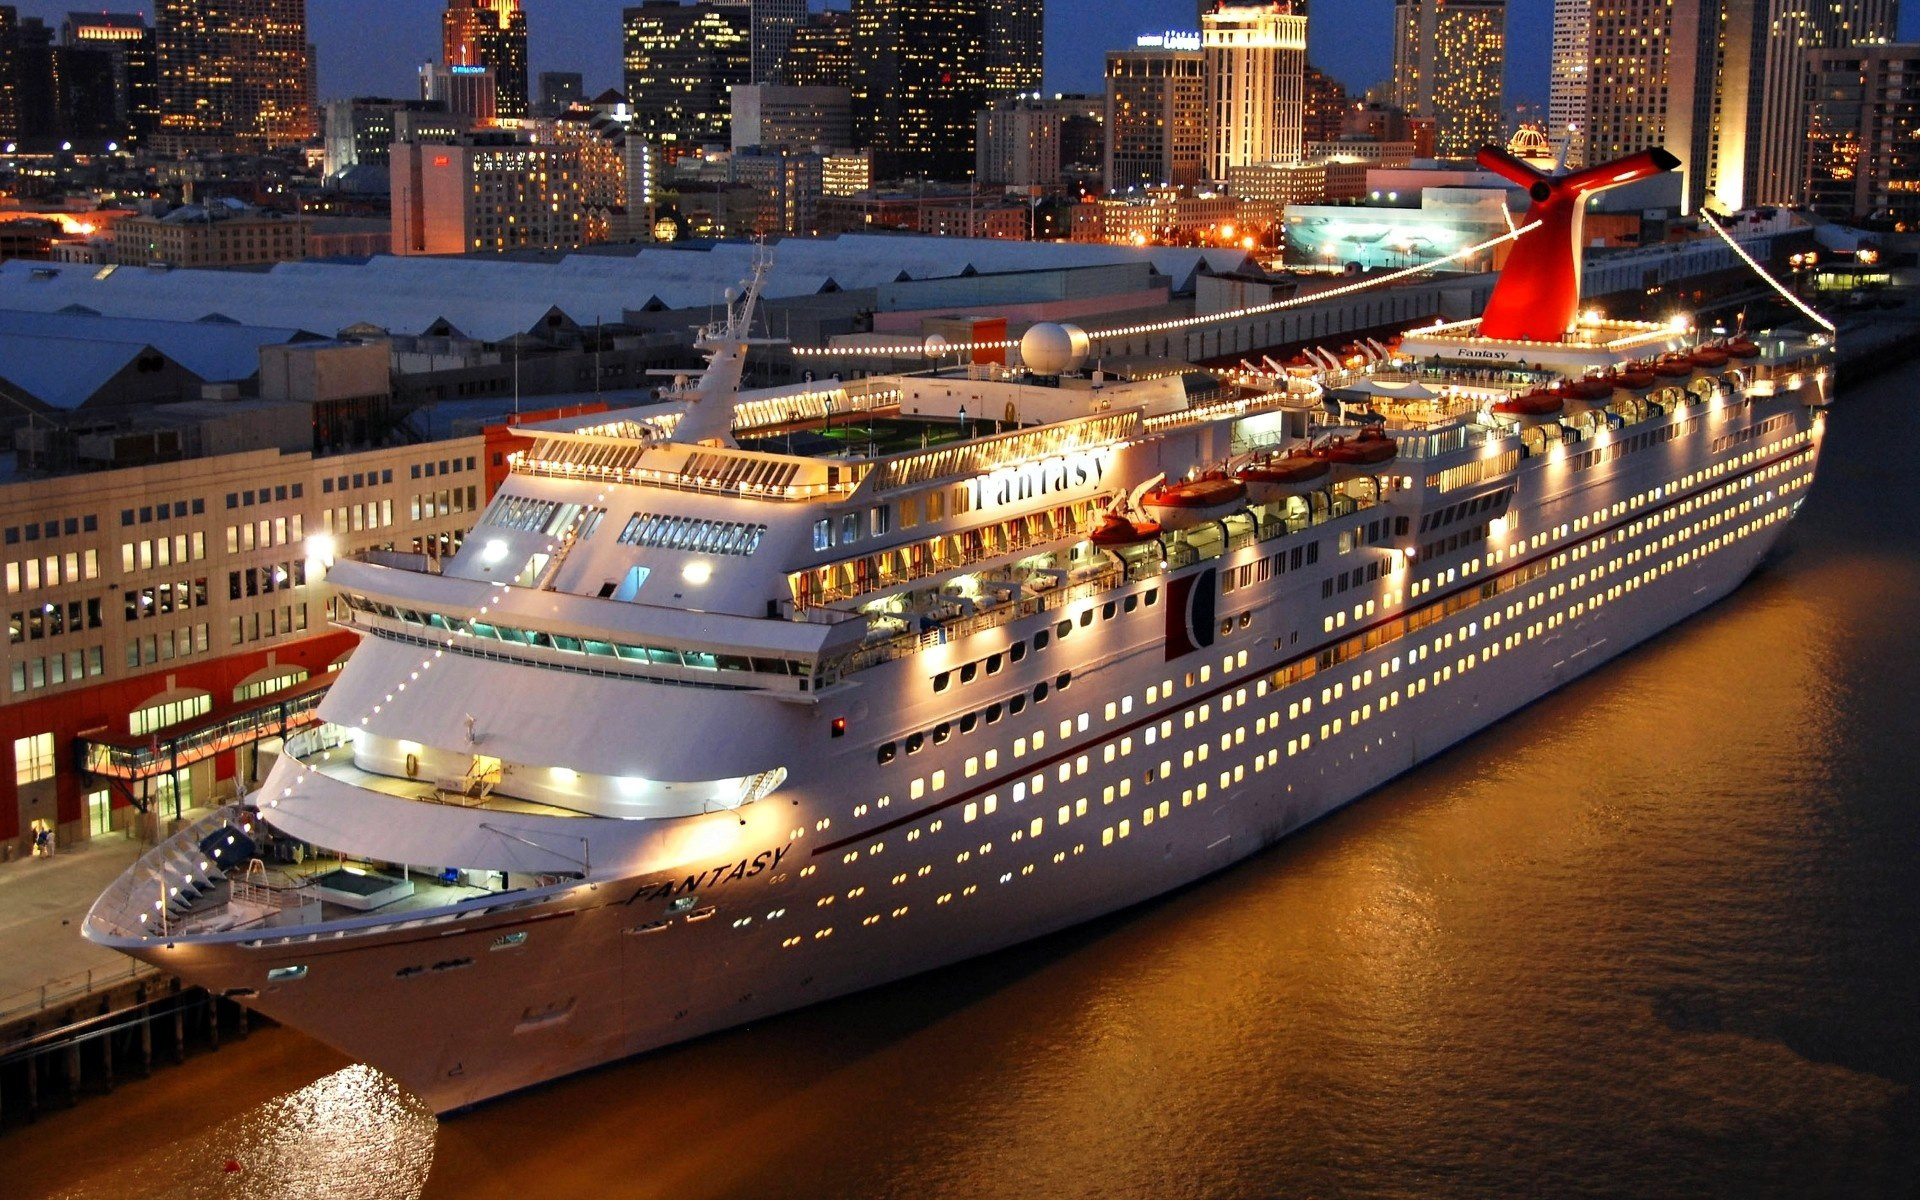 Wallpaper carnival cruise fantasy night lights desktop wallpaper 1920x1200